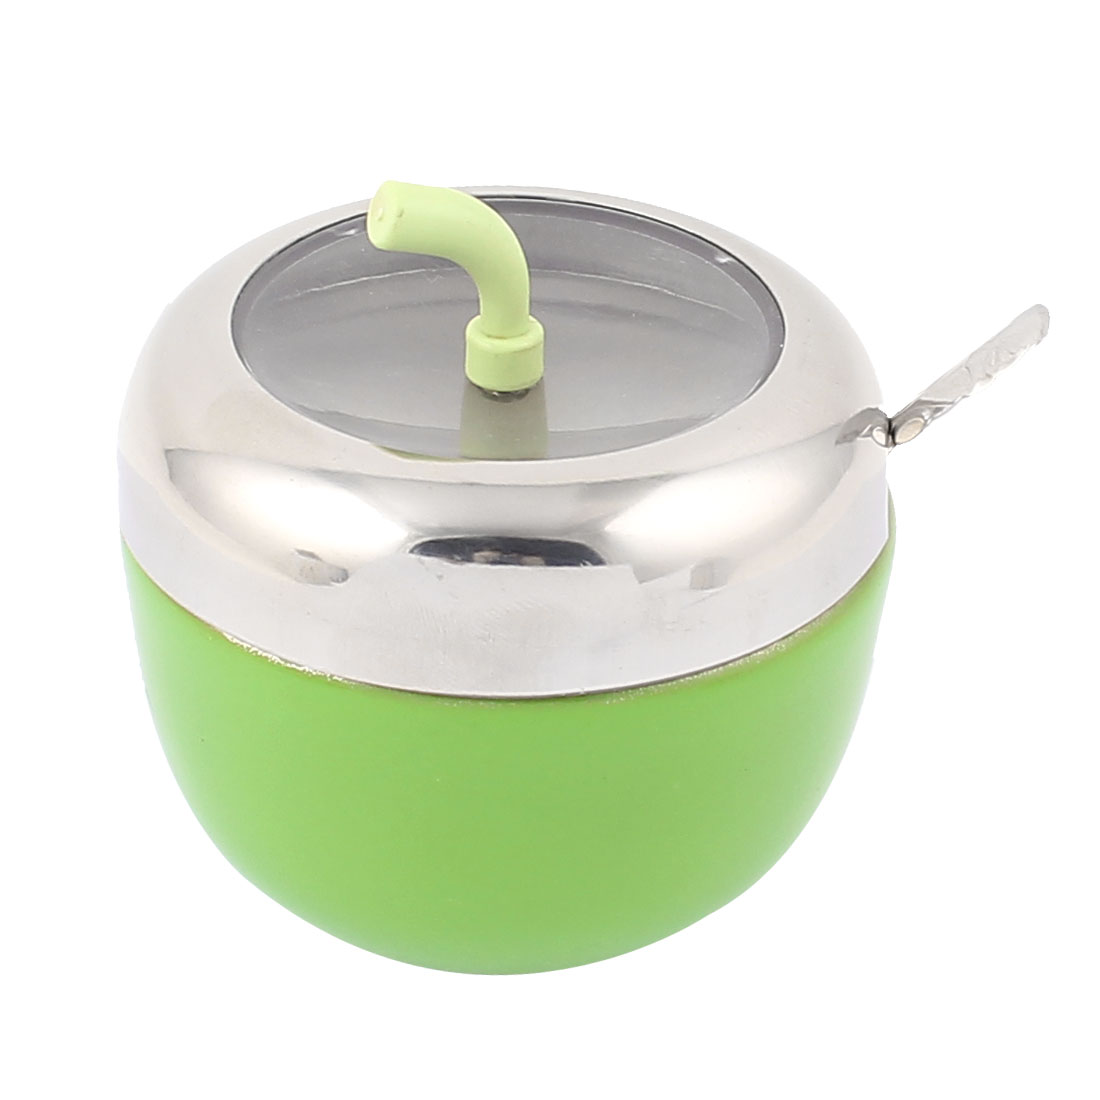 Home Kitchen Rotatable Lid Stainless Steel Spices Cruet Bottle Chili Powder Toothpick Holder